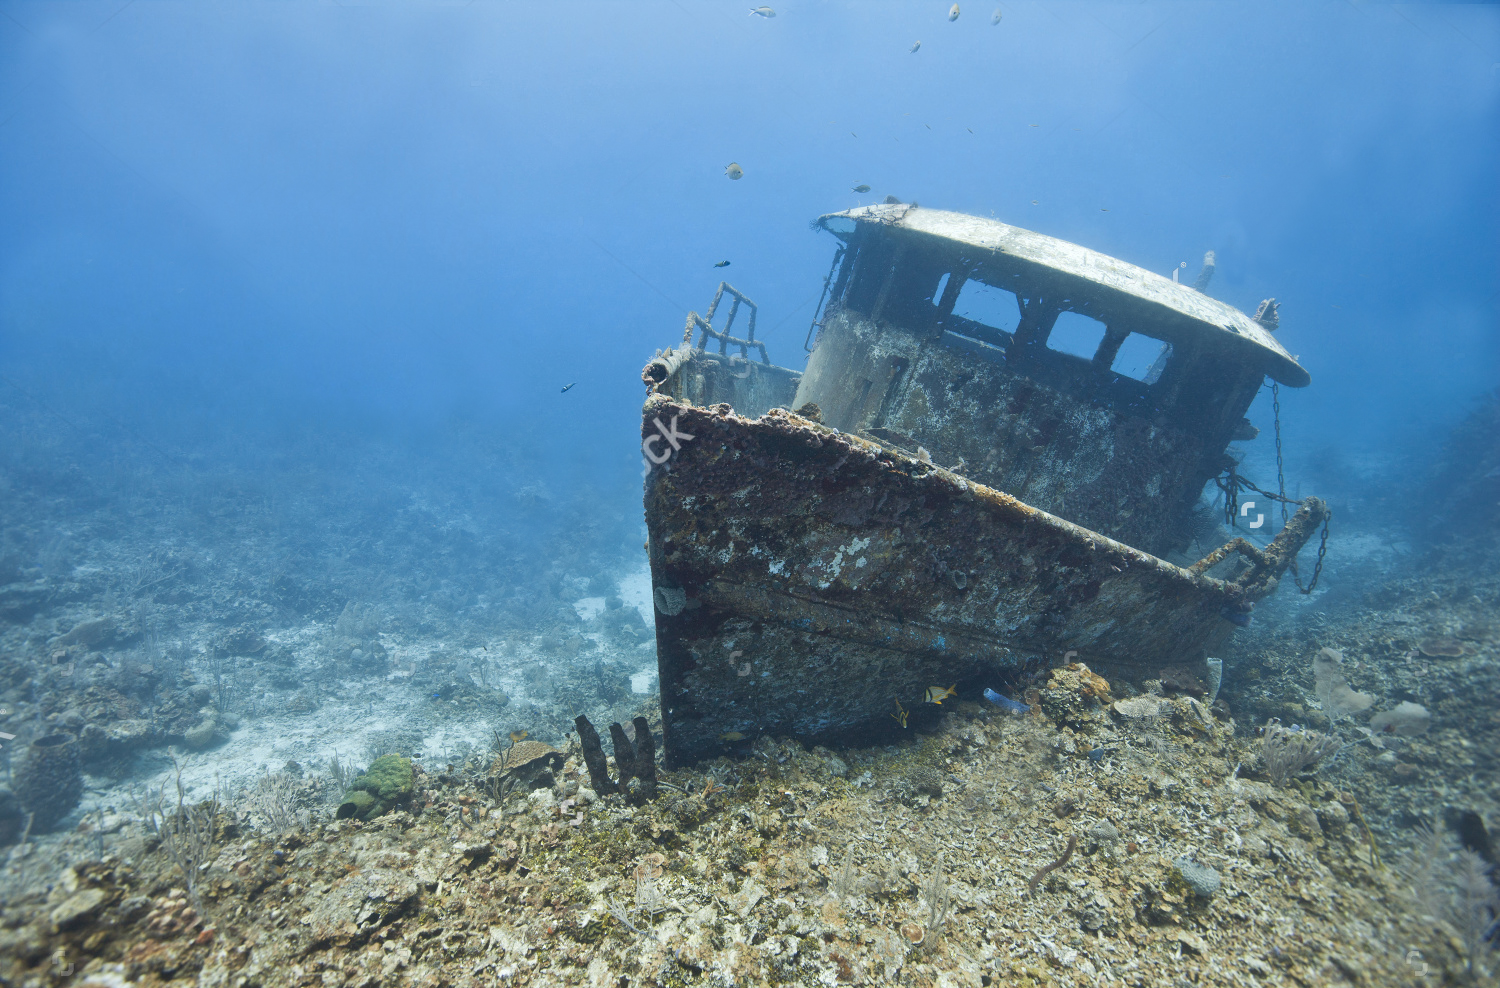 stock-photo-the-wreck-of-the-mr-bud-a-former-shrimping-boat-scuttled-off-the-island-of-roatan-hondur